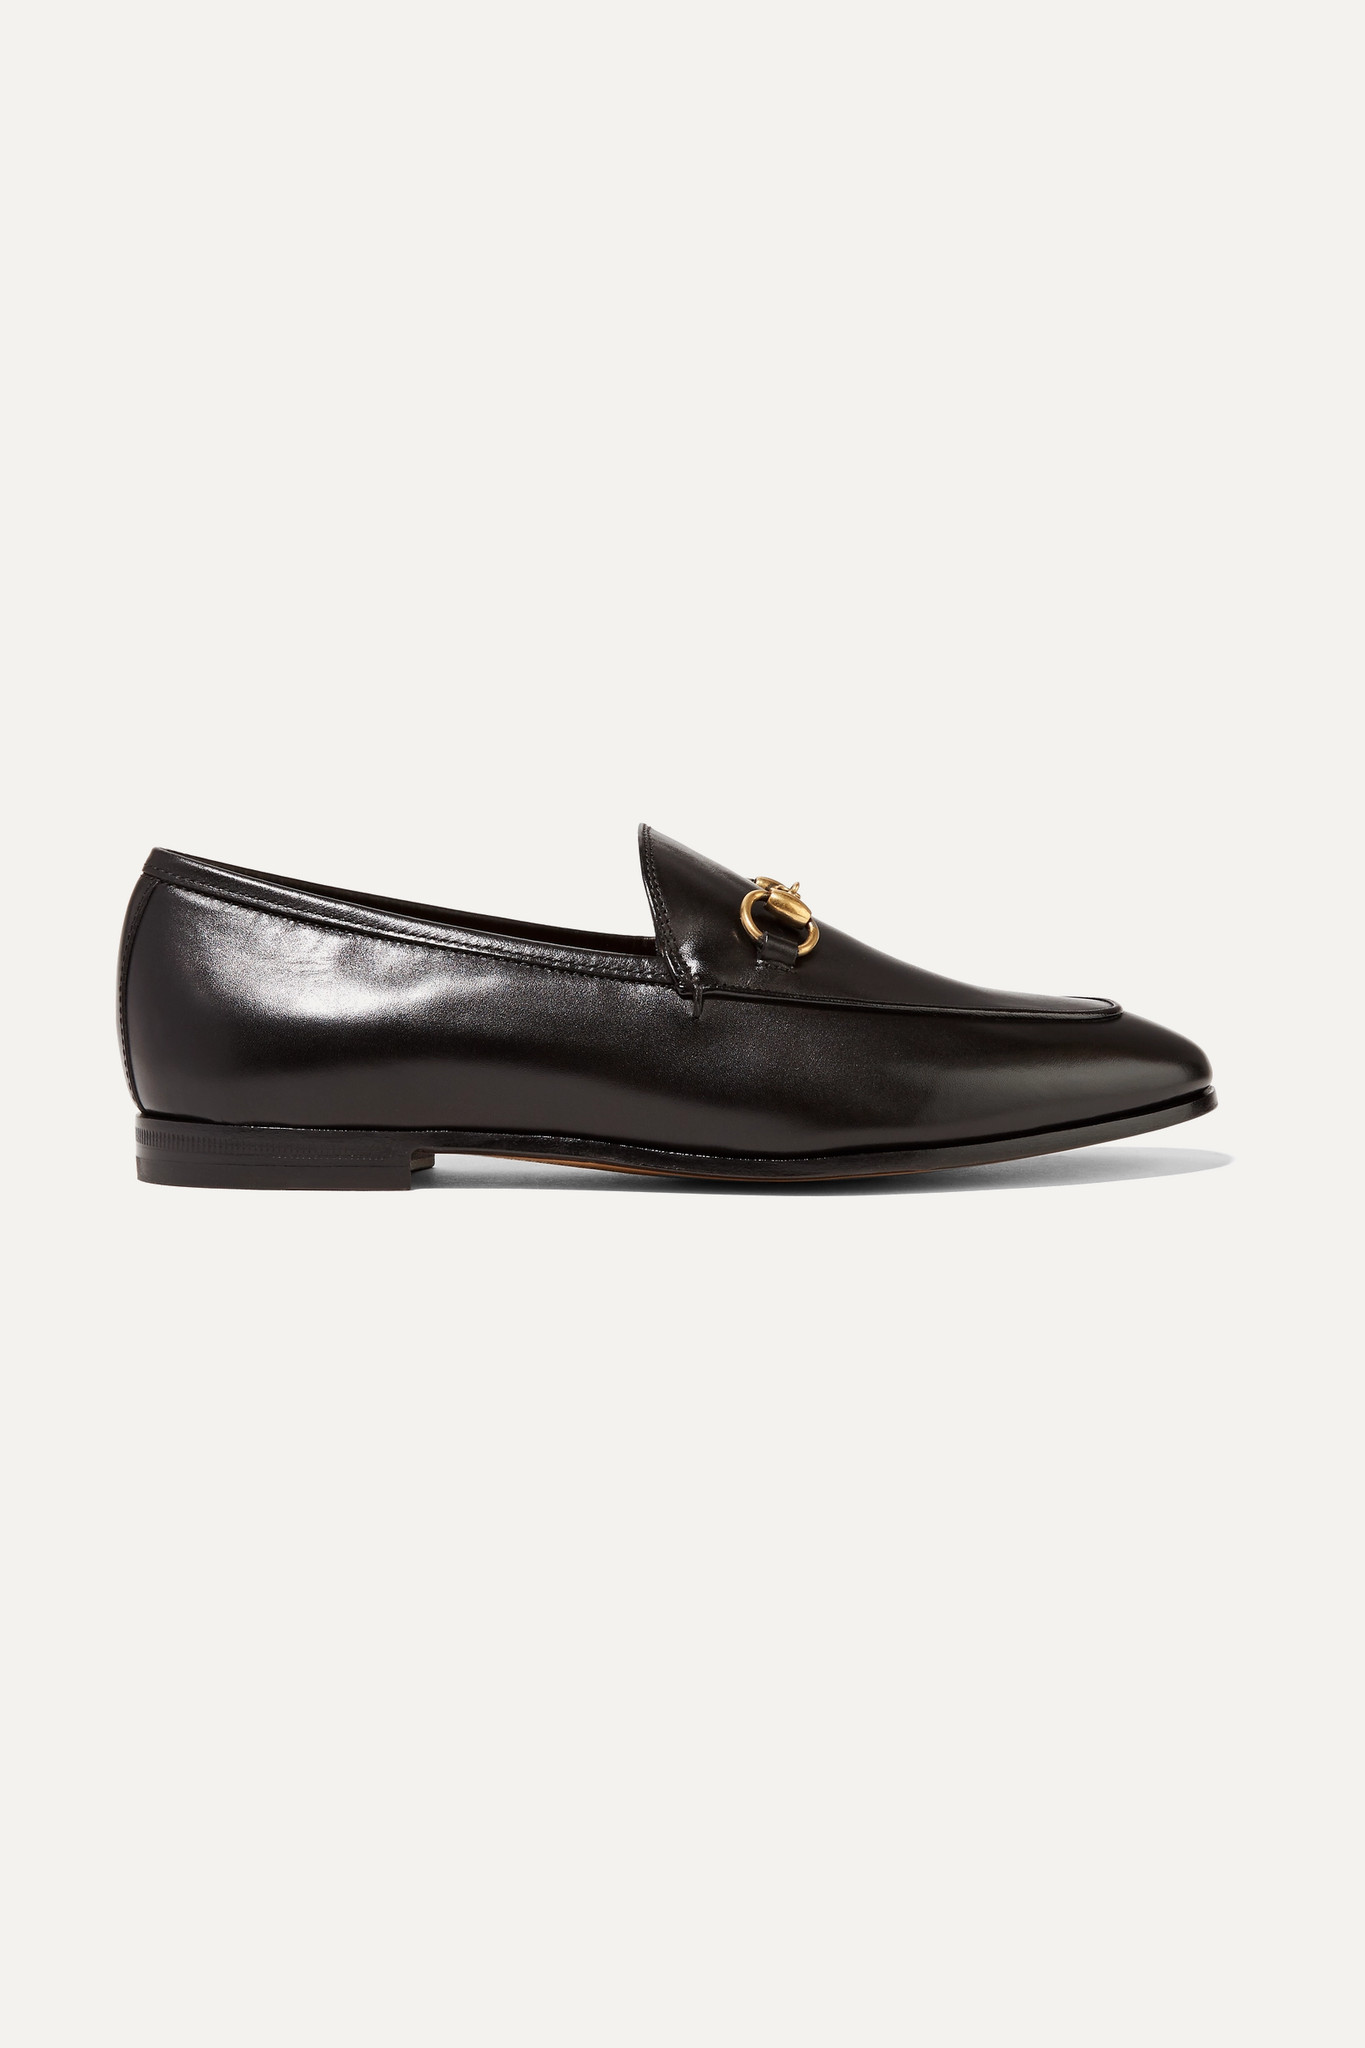 GUCCI - Jordaan Horsebit-detailed Leather Loafers - Black - IT42